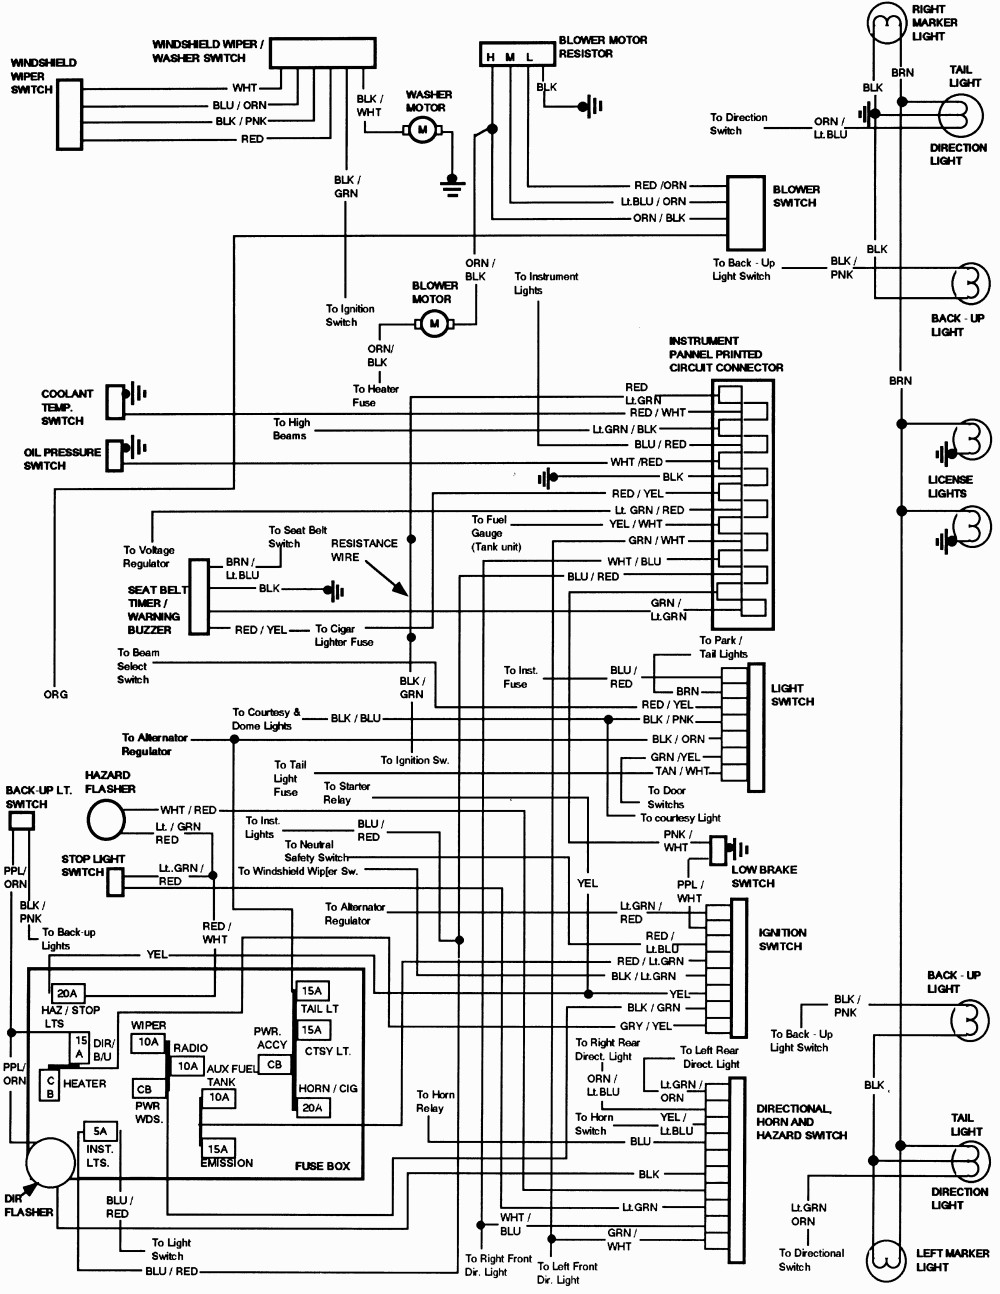 hight resolution of 2011 f 150 hvac wiring schematic wiring diagram fascinating 2011 ford fiesta wiring diagram pdf 2011 ford wiring diagram